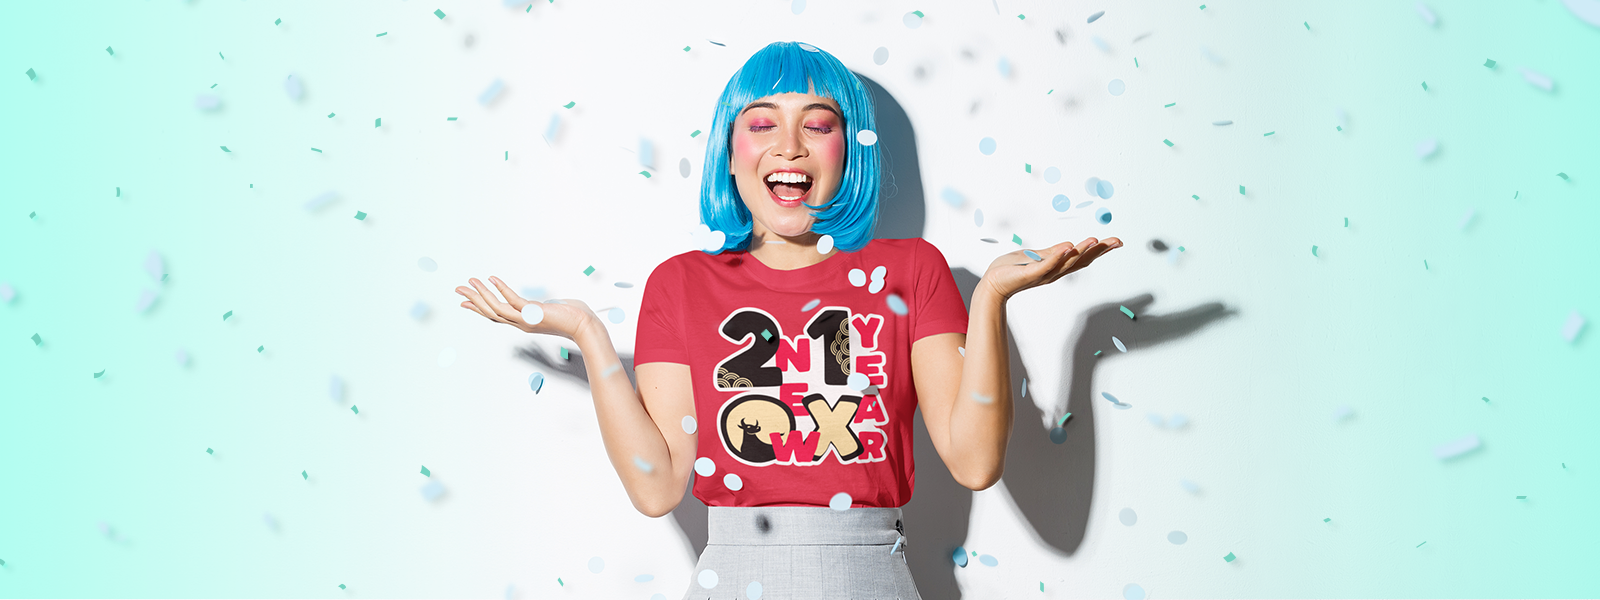 Best Ox Shirts to Celebrate 2021 – the Year of the Ox